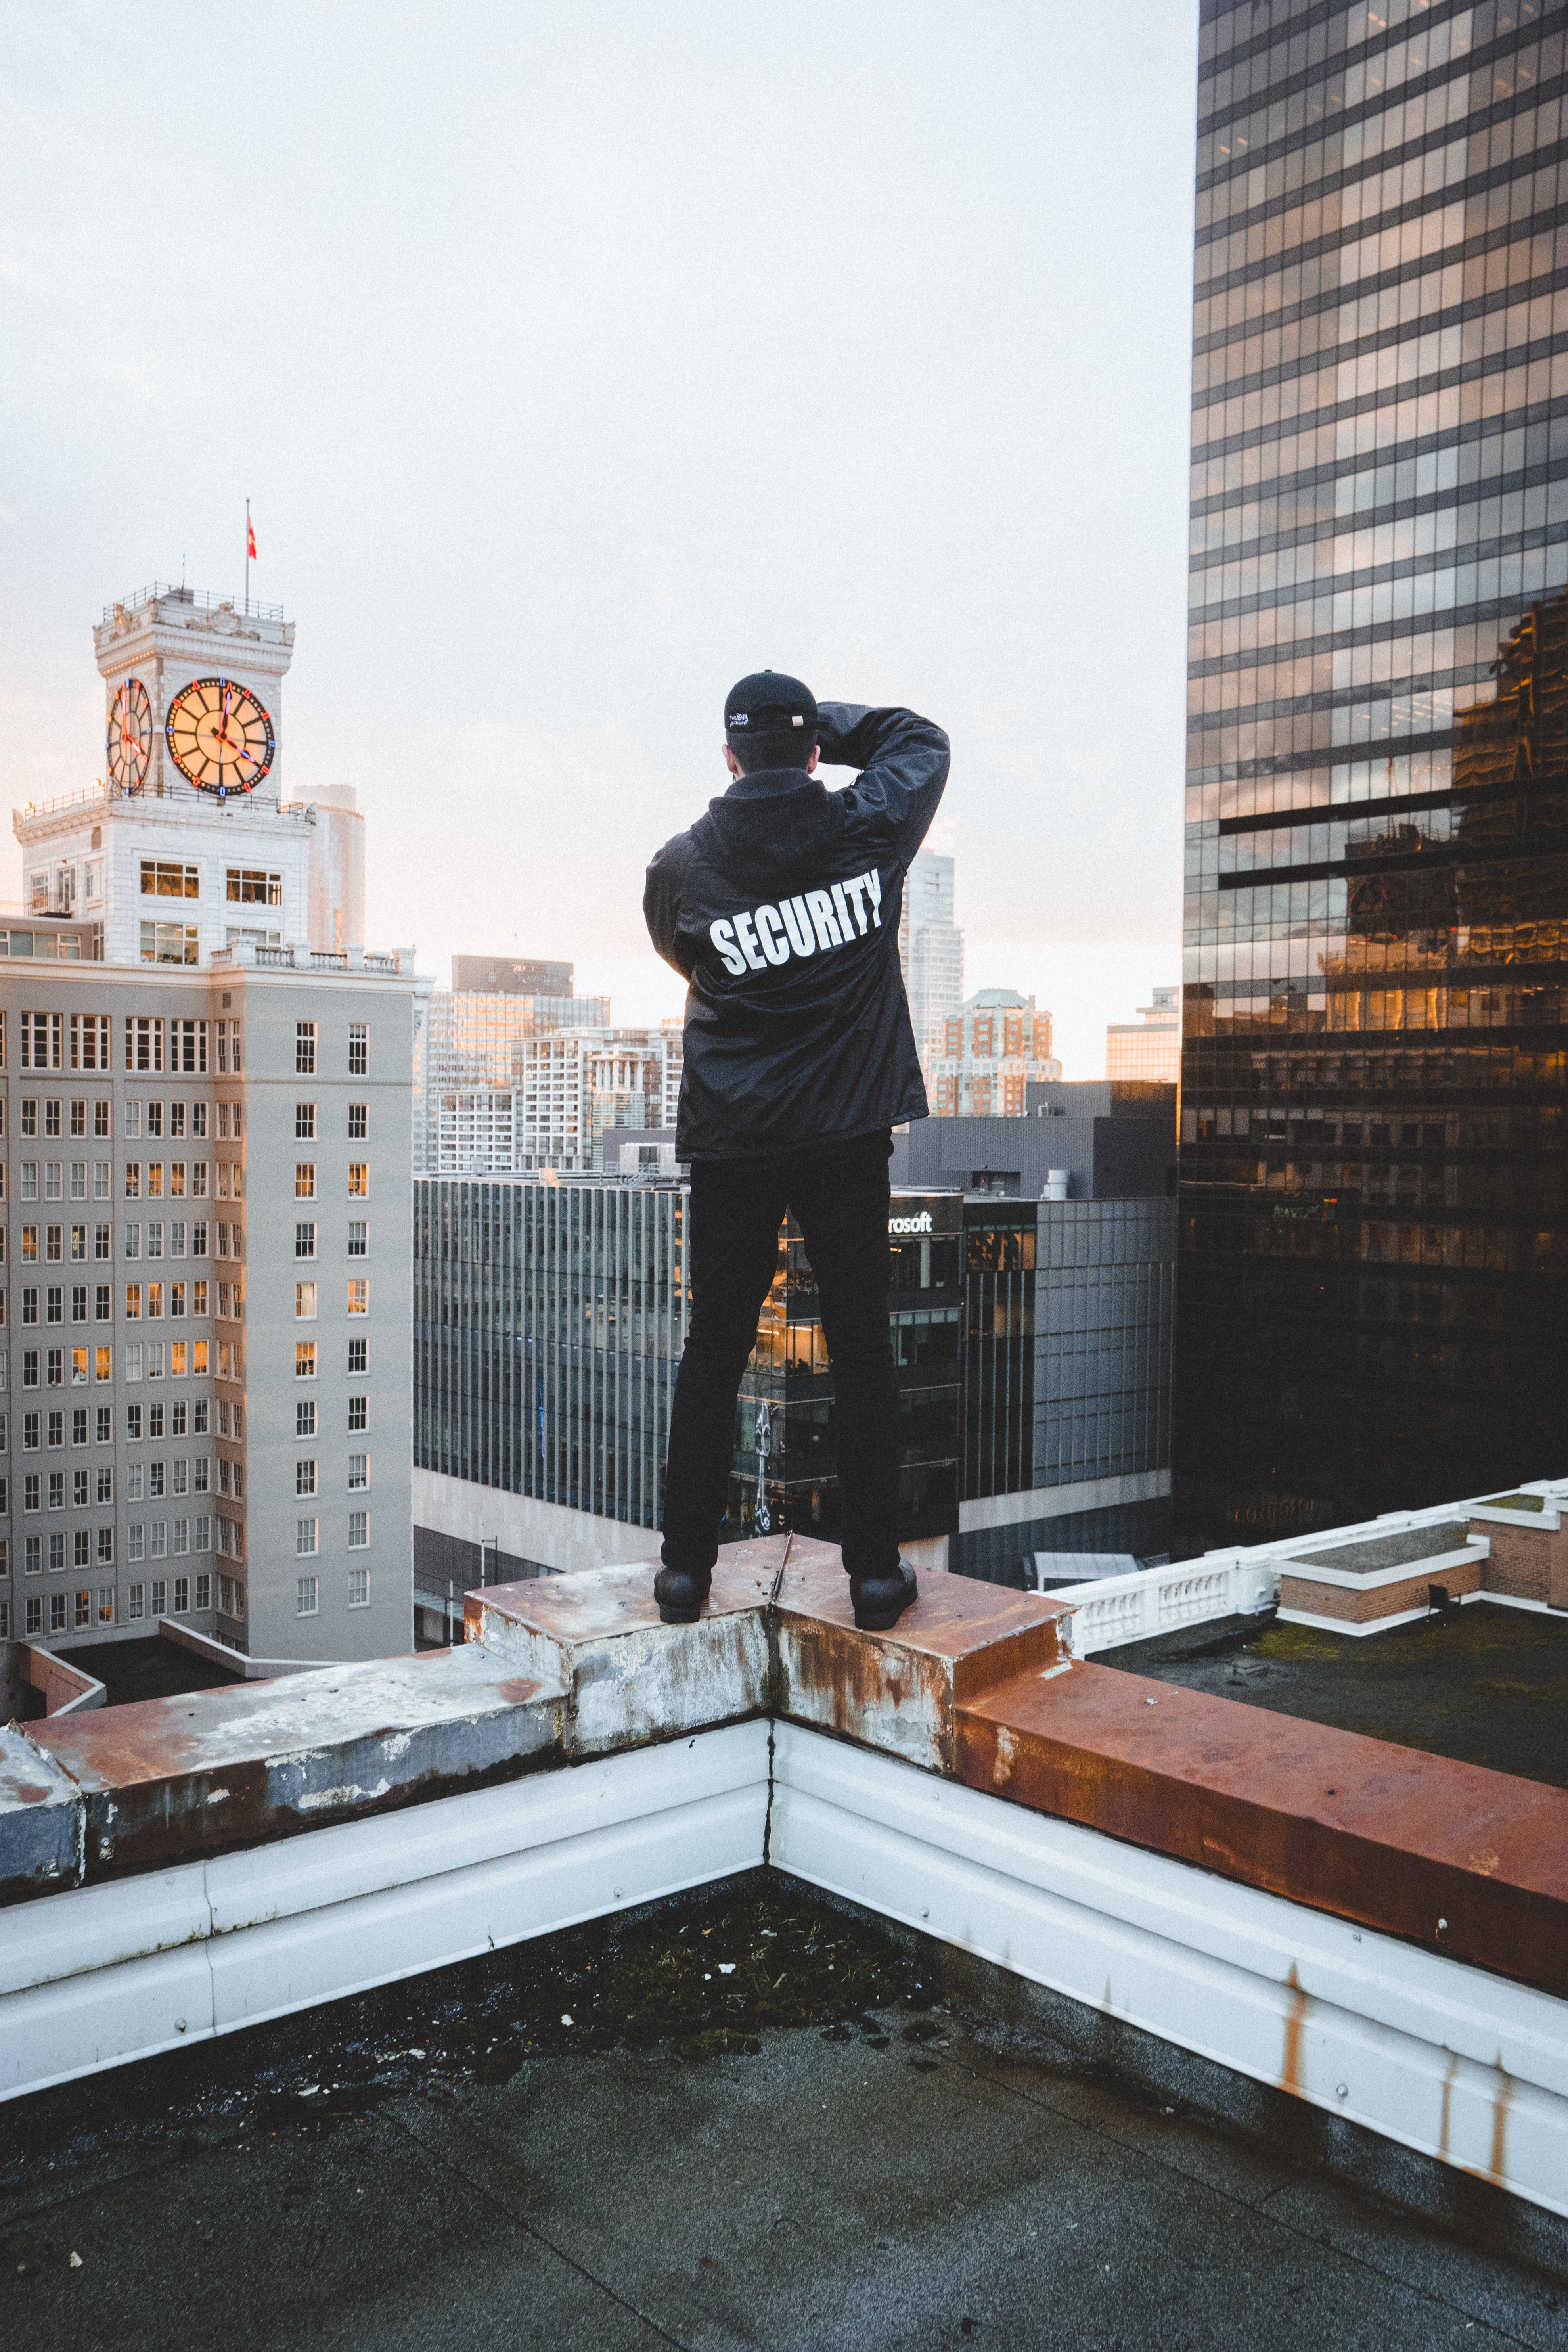 man standing on top of building under white sky during daytime